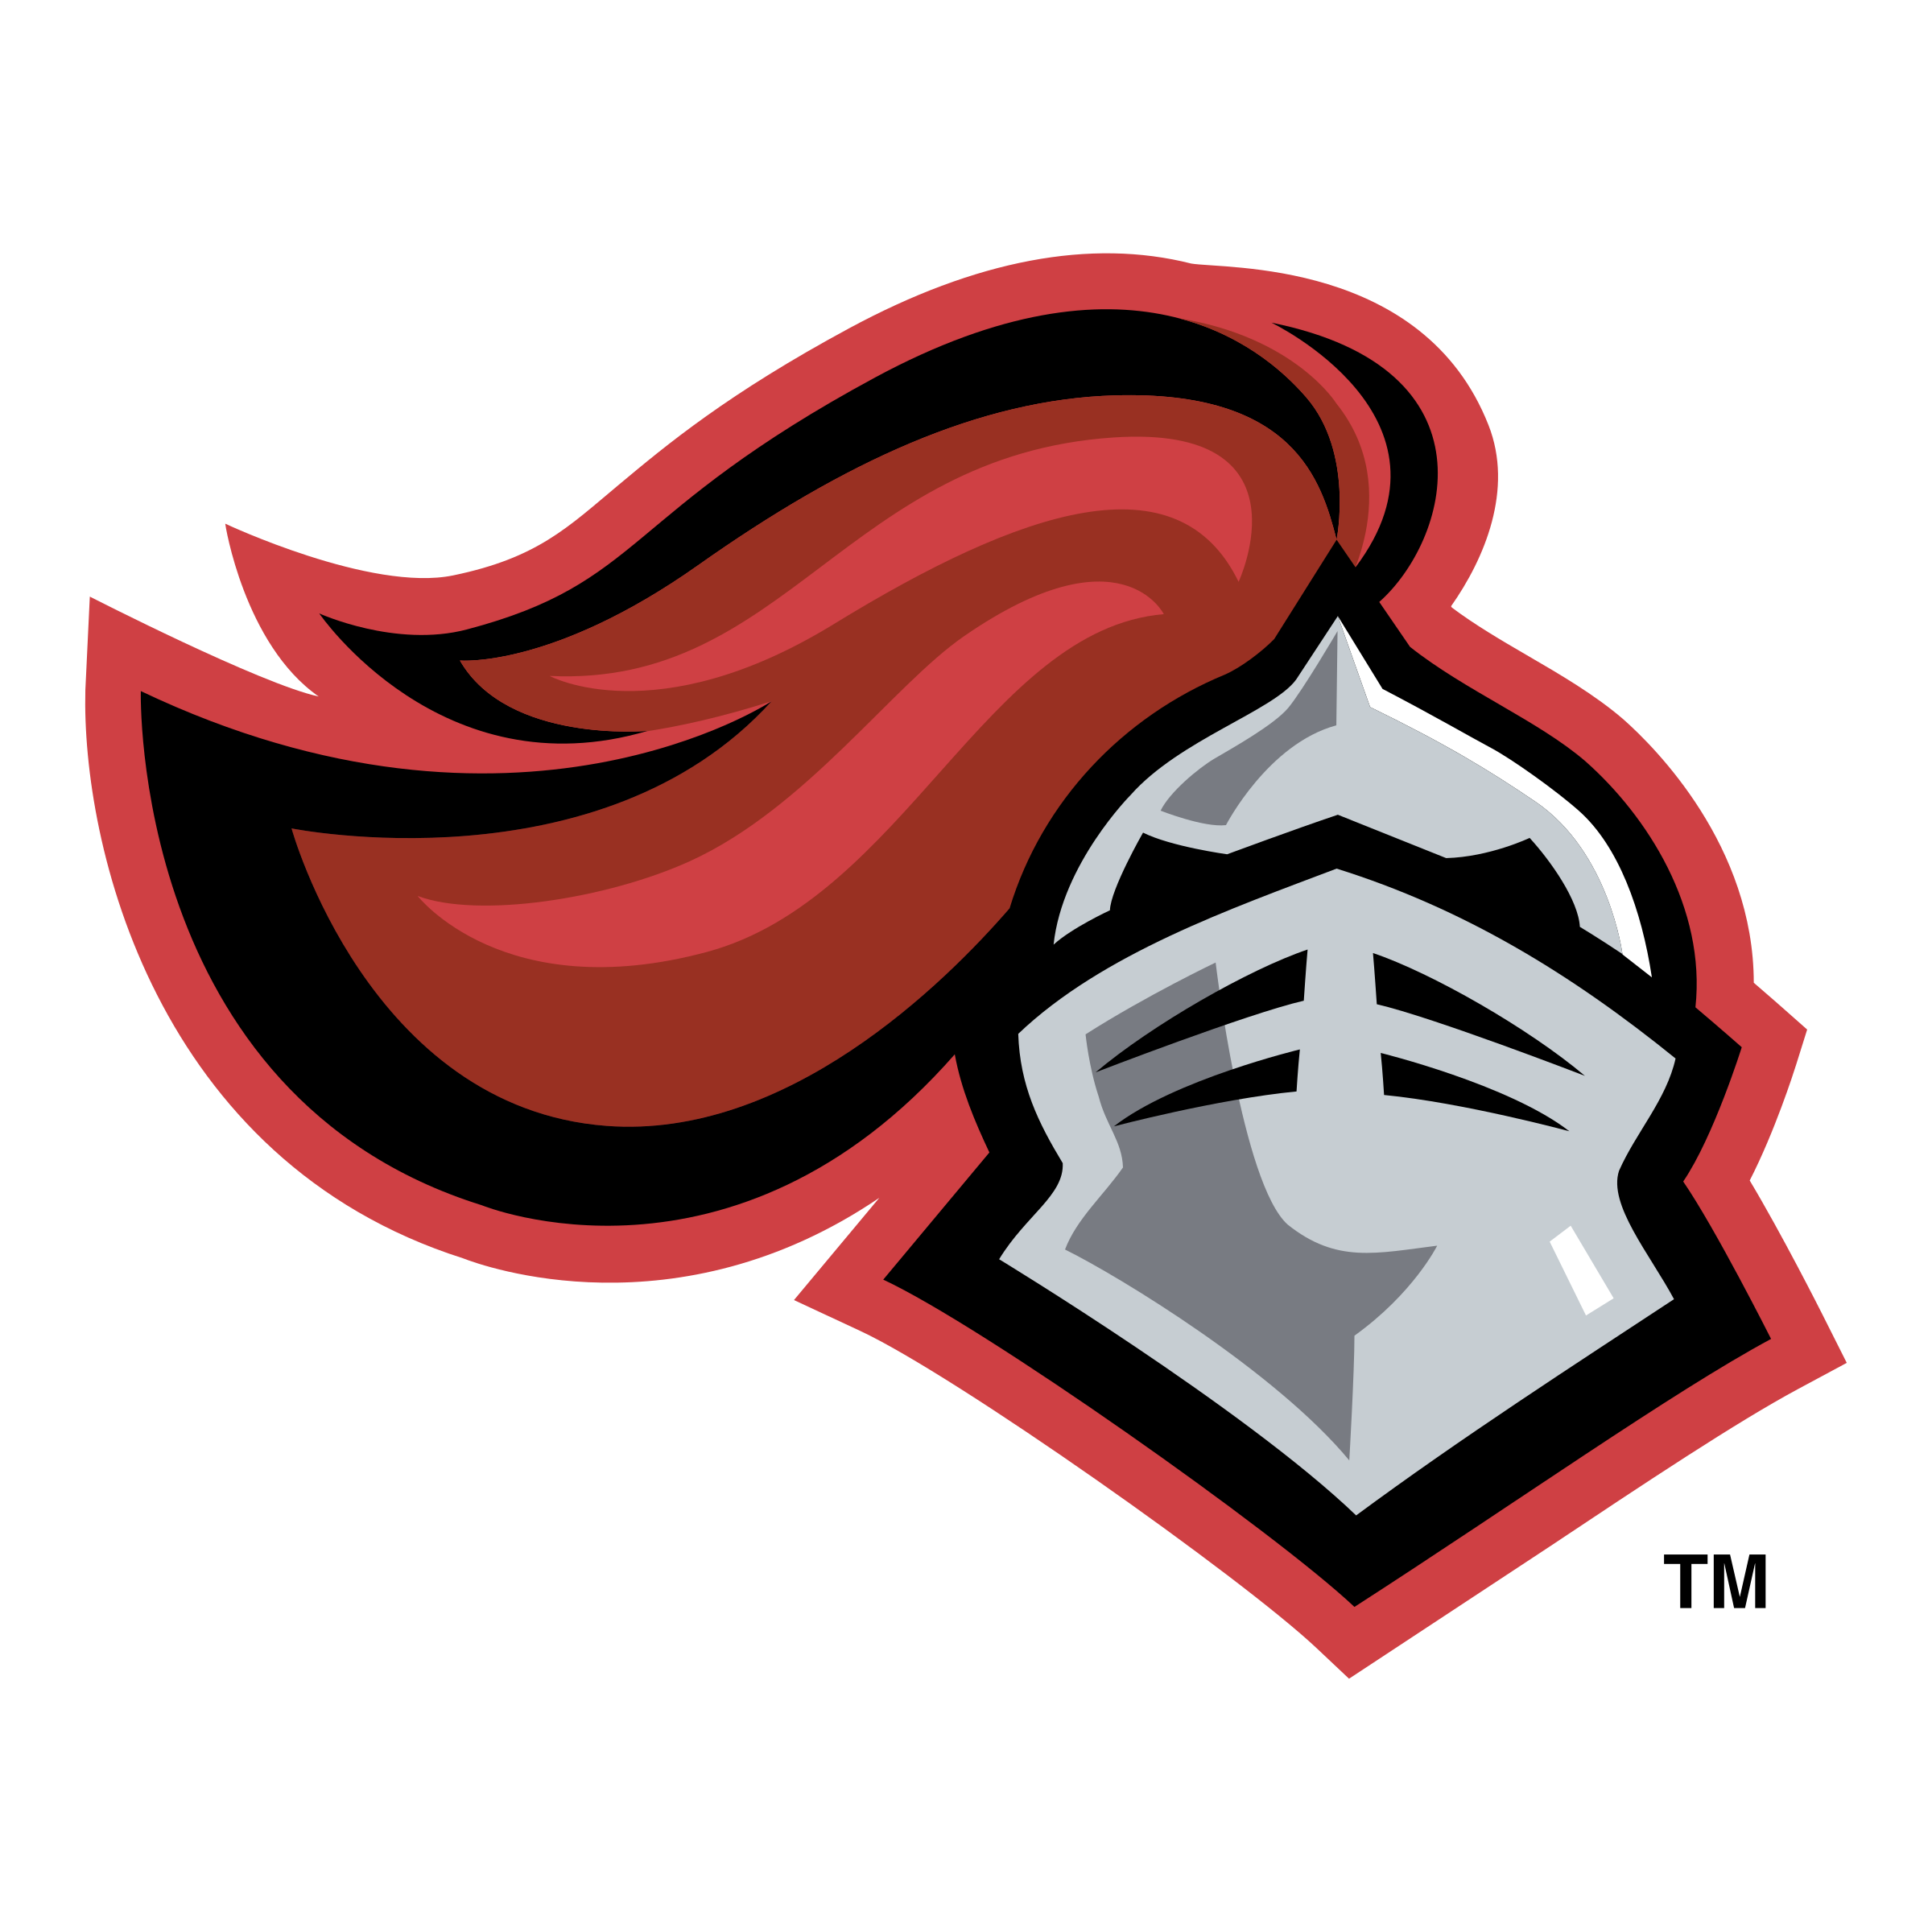 Rutgers Scarlet Knights Logo PNG Transparent & SVG Vector.